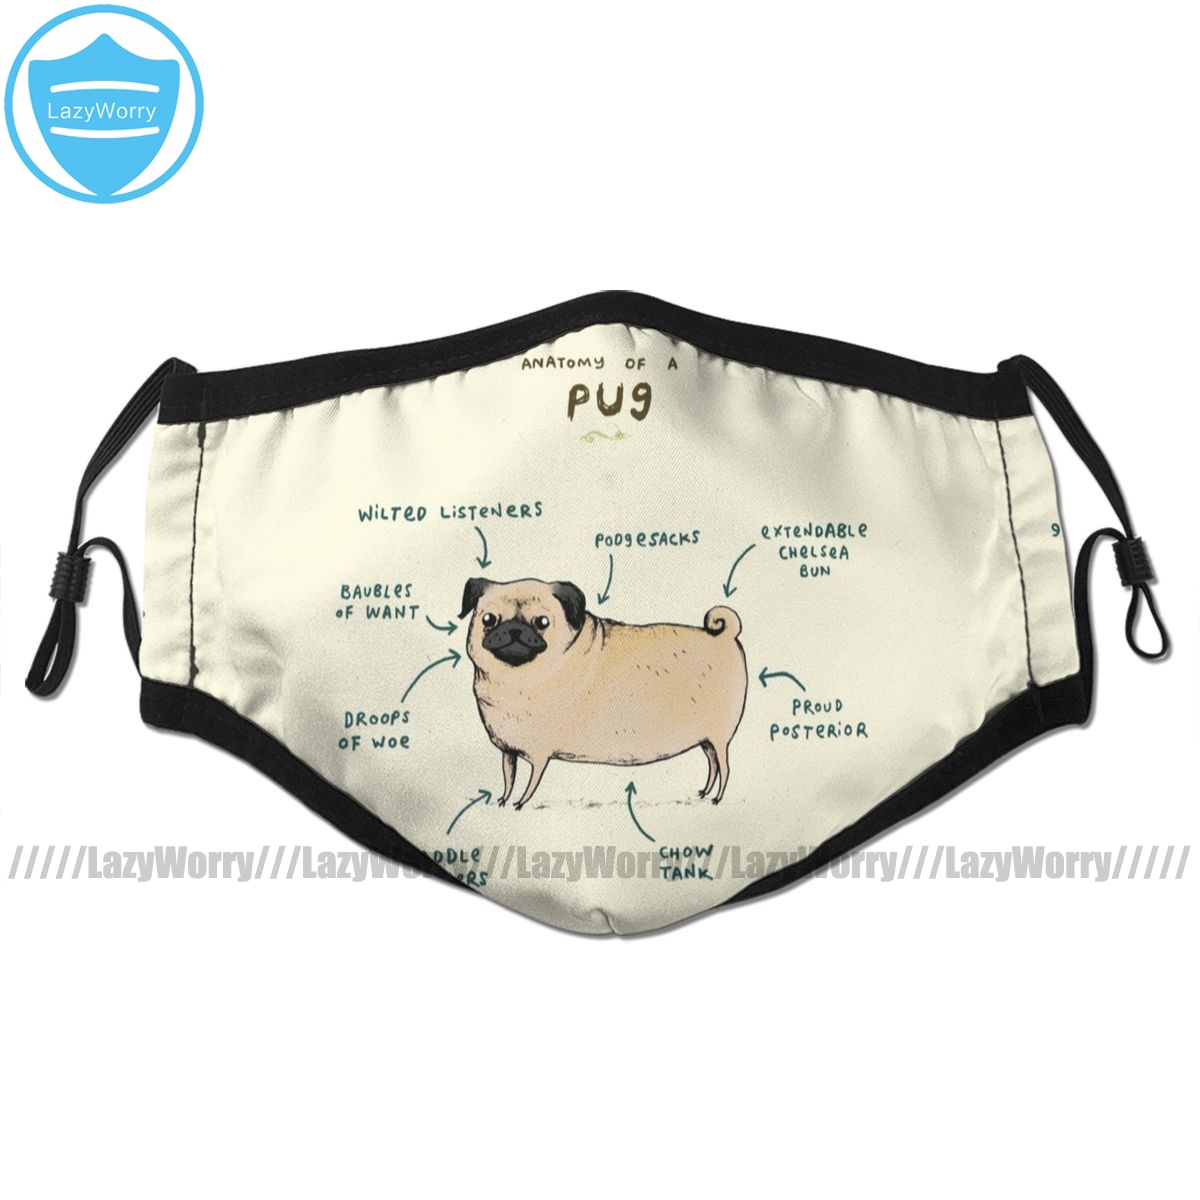 Pug Dog Mouth Face Mask Anatomy Of A Pug Facial Mask Fashion Cool With 2 Filters For Adult